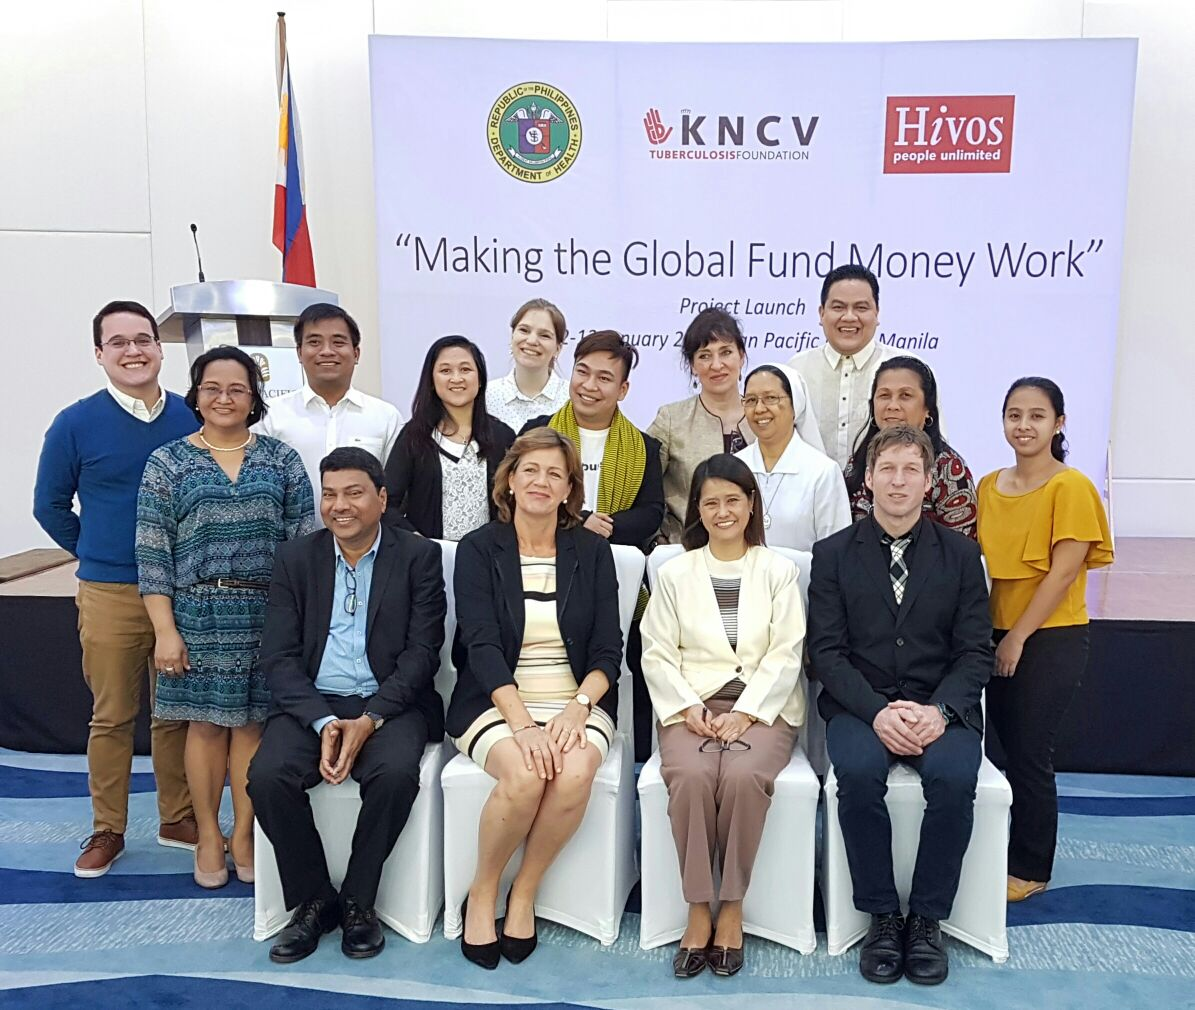 Building strong partnerships to stop TB-HIV in the Philippines